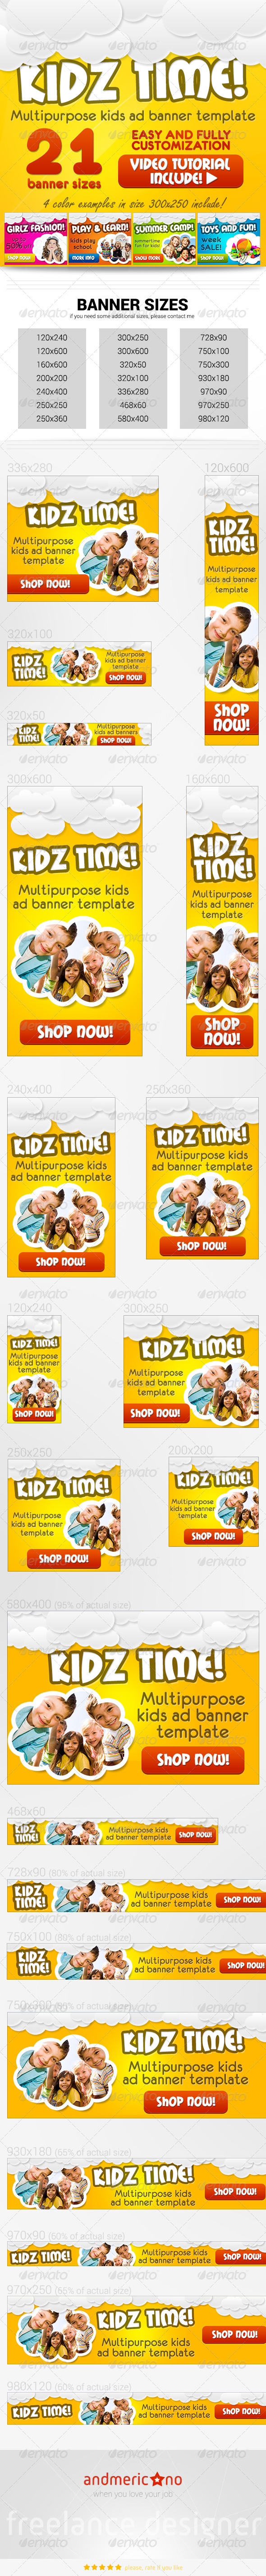 Kids Banners Set - Banners & Ads Web Elements